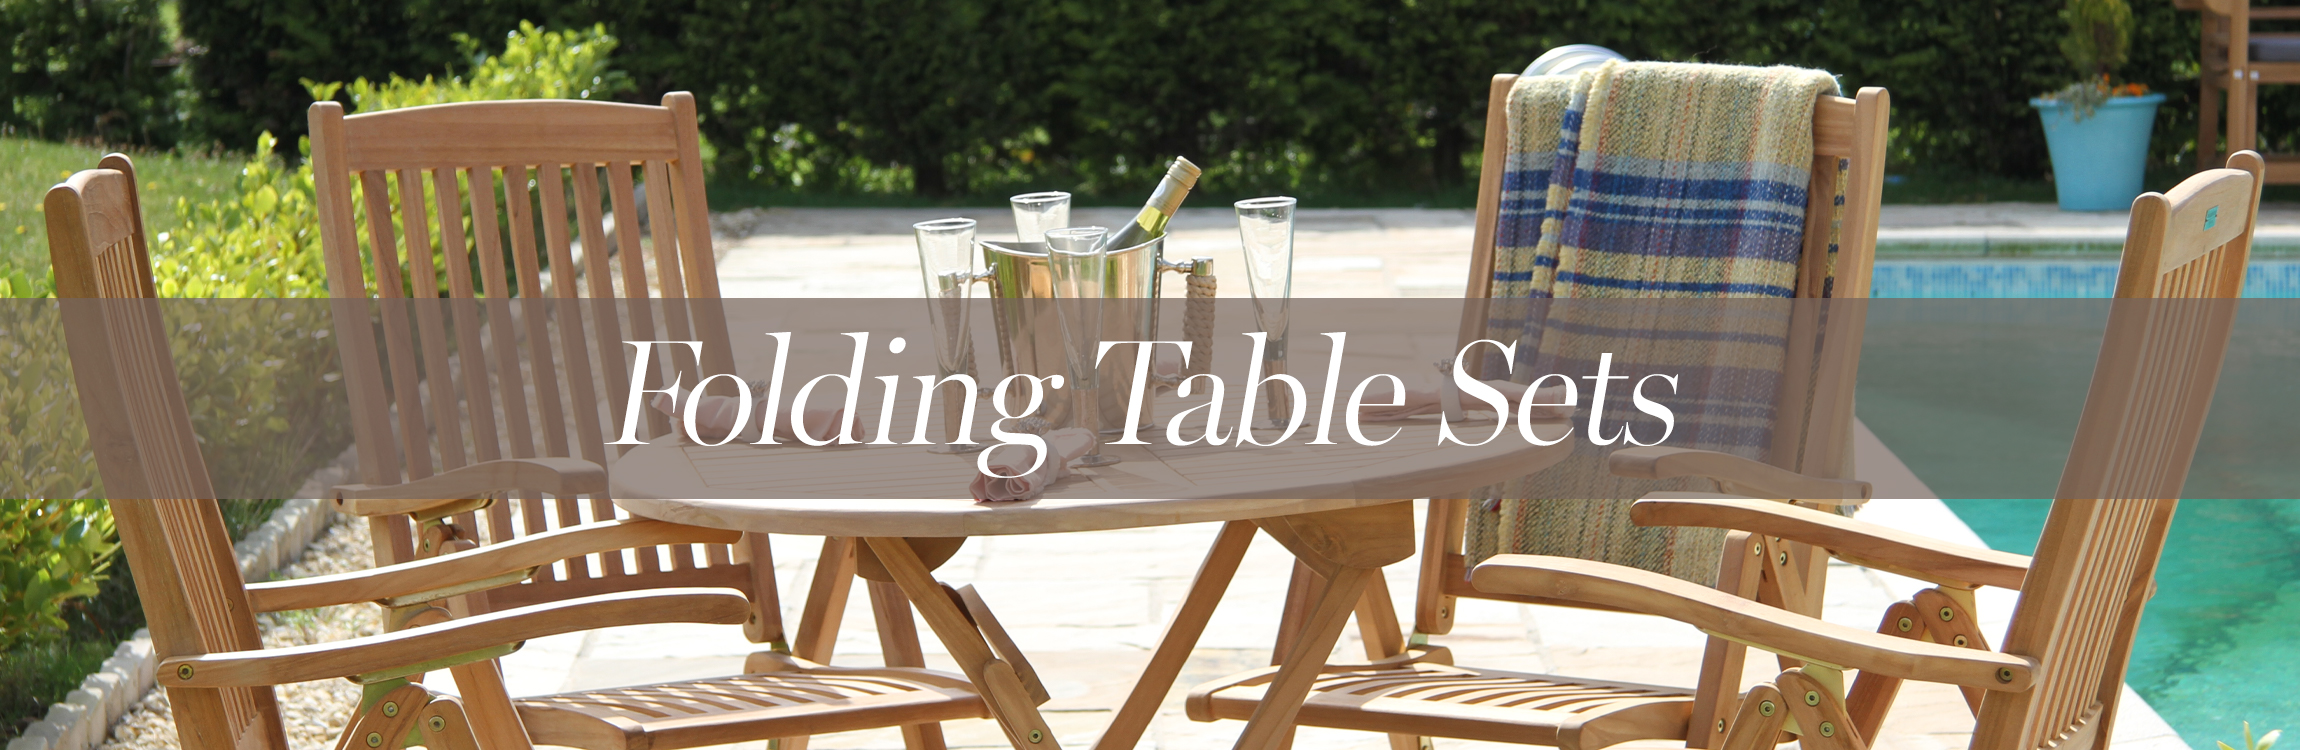 Folding Table Sets